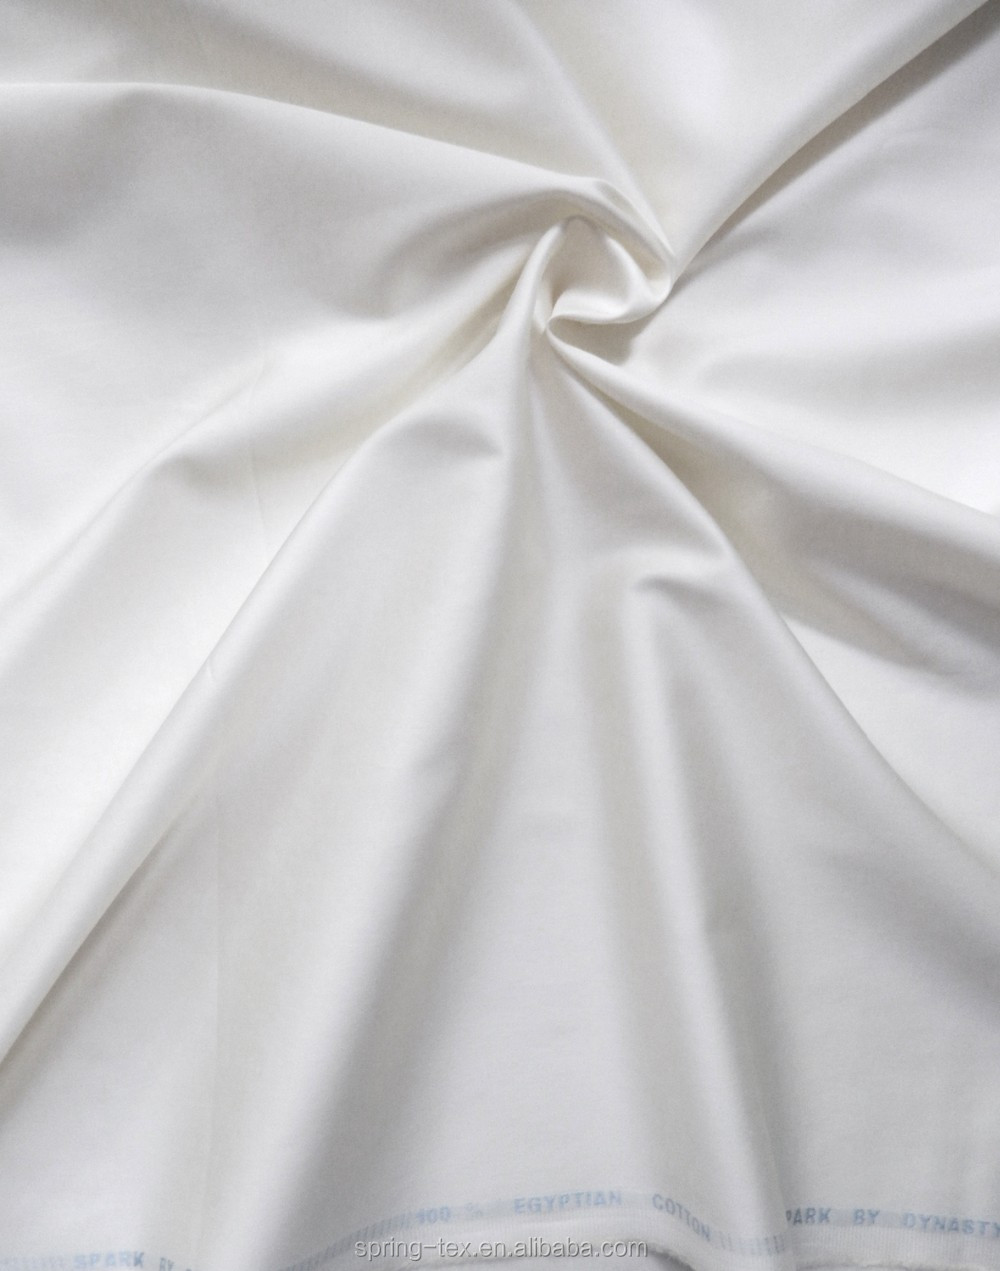 China Wholesale White 200GSM 100% Egyptian Cotton 400TC Hotel Bed Sheets